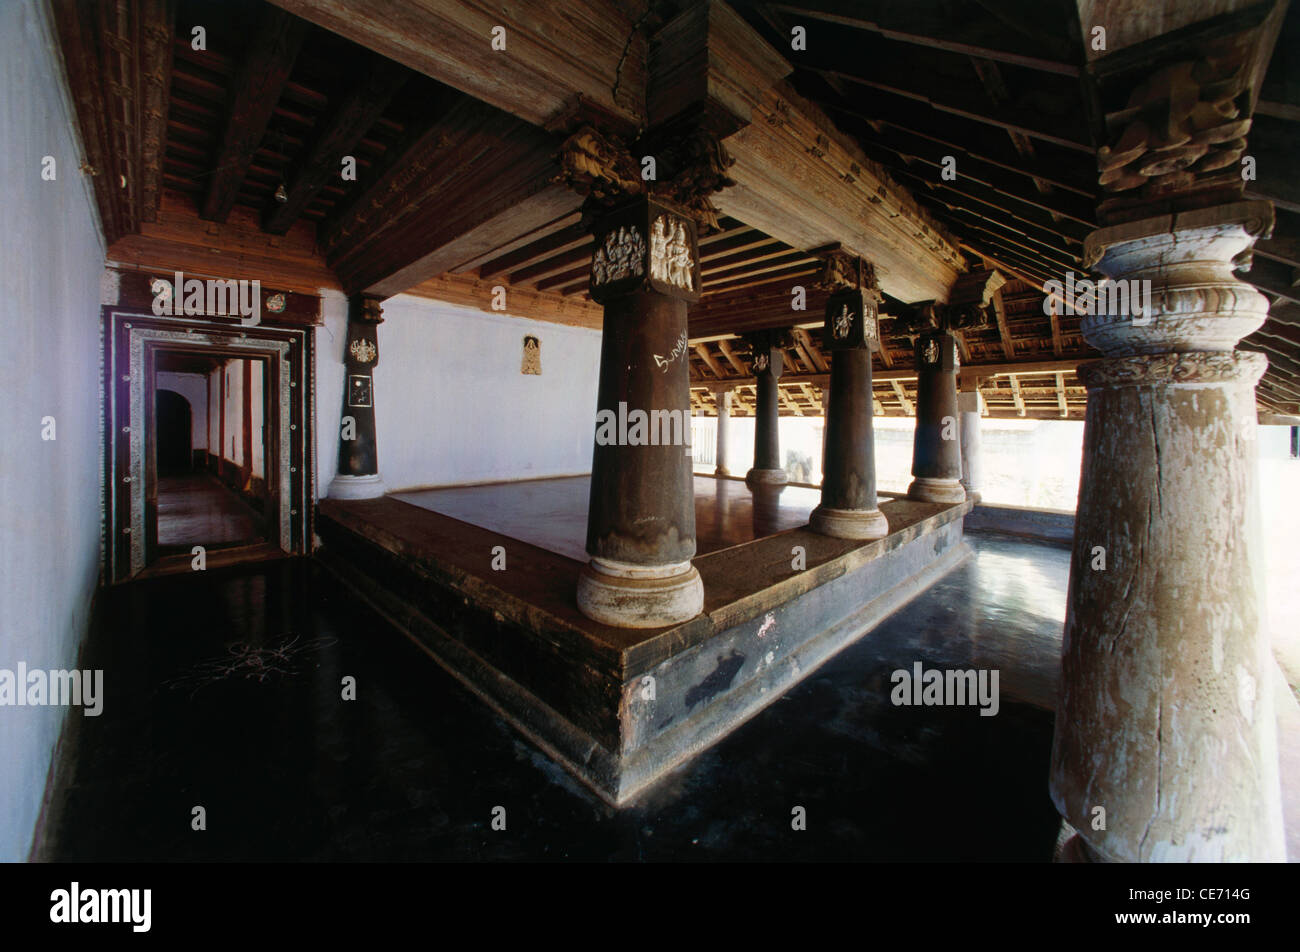 AAD Old Indian House Interior Pillars Palghat Kerala India   House Interiors  India